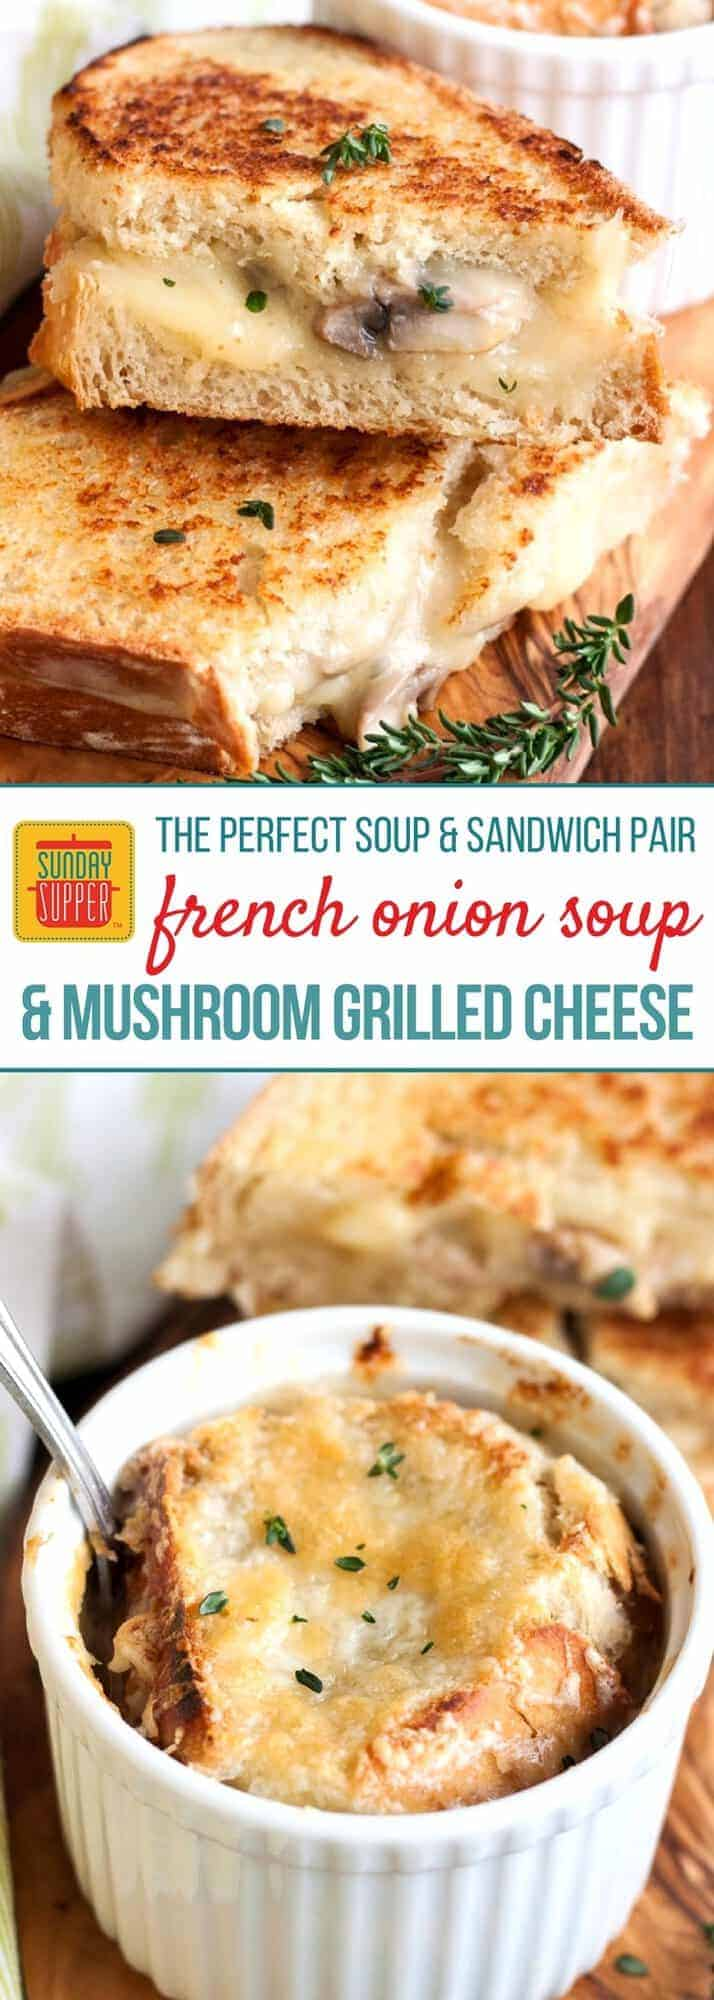 The soup and sandwich combo of your dreams! The flavors in our Mushroom Grilled Cheese and French Onion Soup make a magical combination. Your taste buds will SWOON! Enjoy this soup and sandwich pairing for a comforting lunch meal, weekday supper, or even a casual Sunday Supper with the family gathered around the table. #SundaySupper #FrenchOnionSoup #GrilledCheese #SoupPairing #ComfortFood